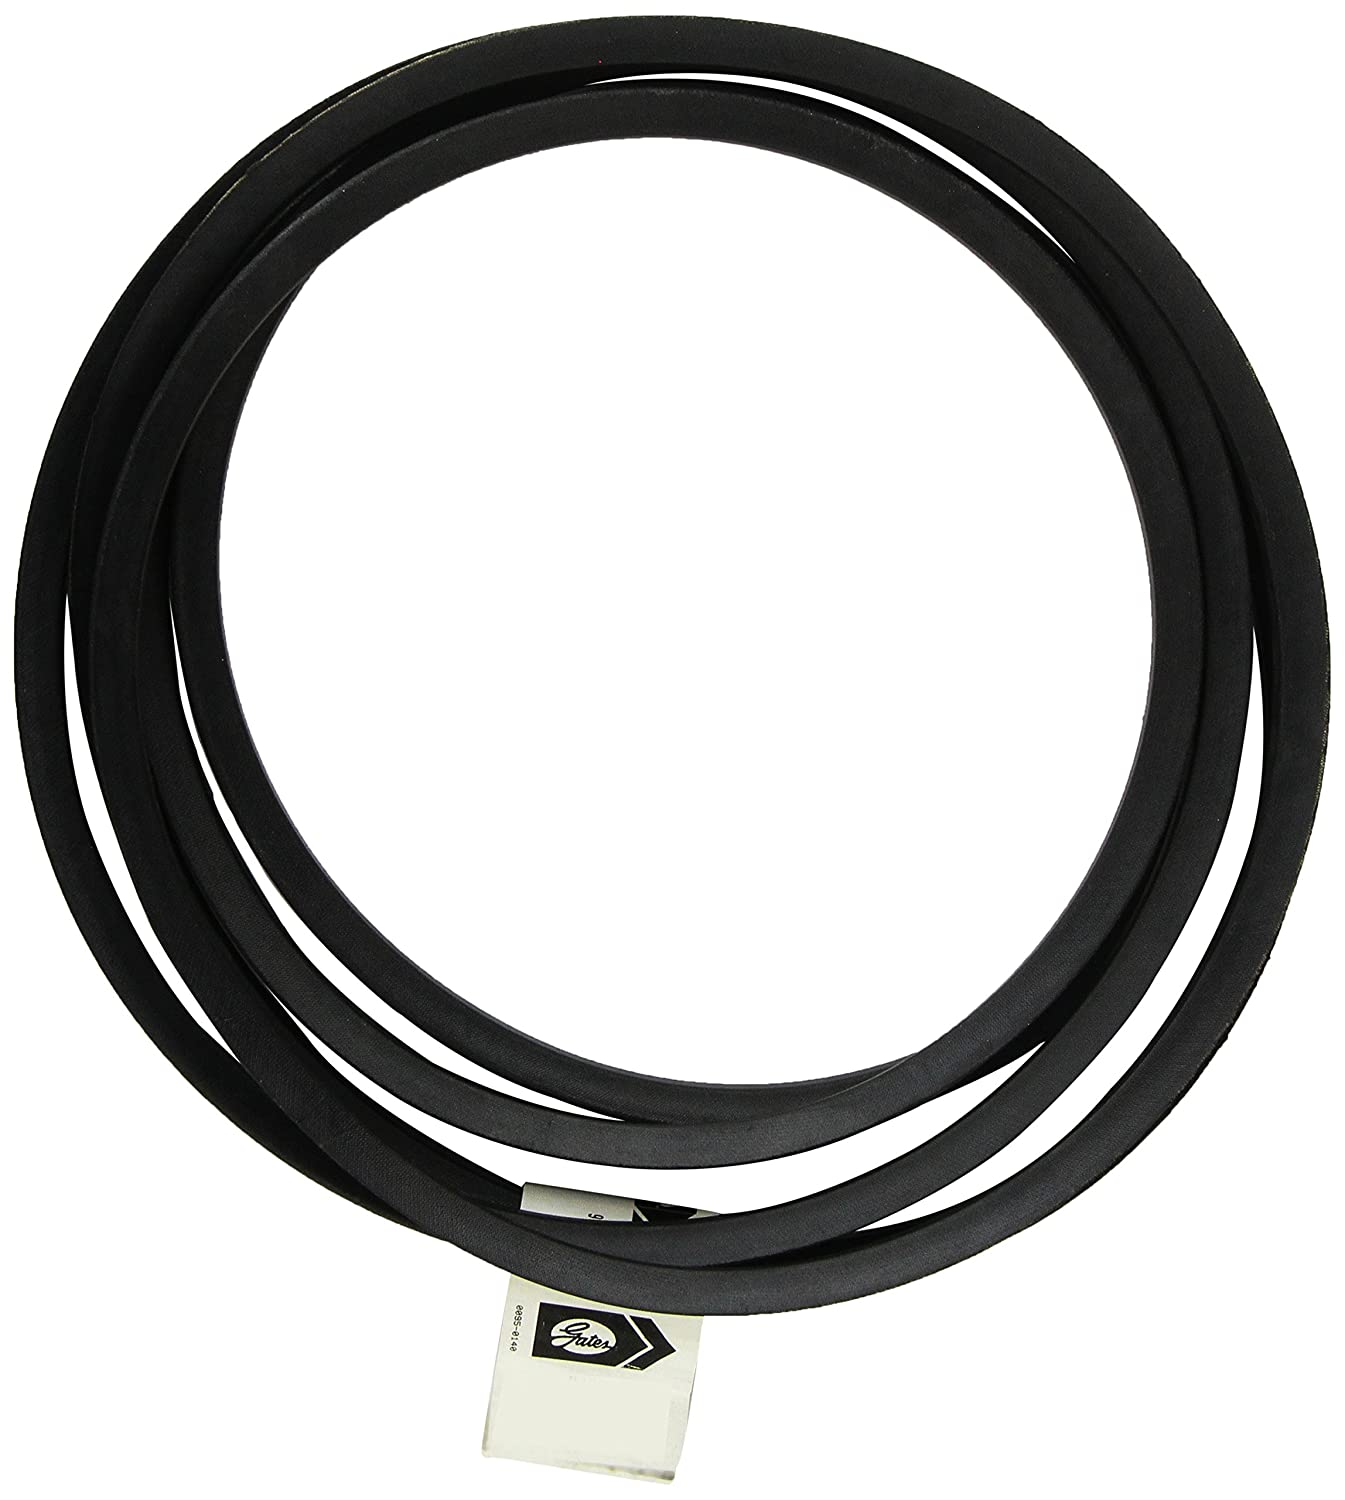 GATES RUBBER COMPANY B180 HI-POWER II BELT